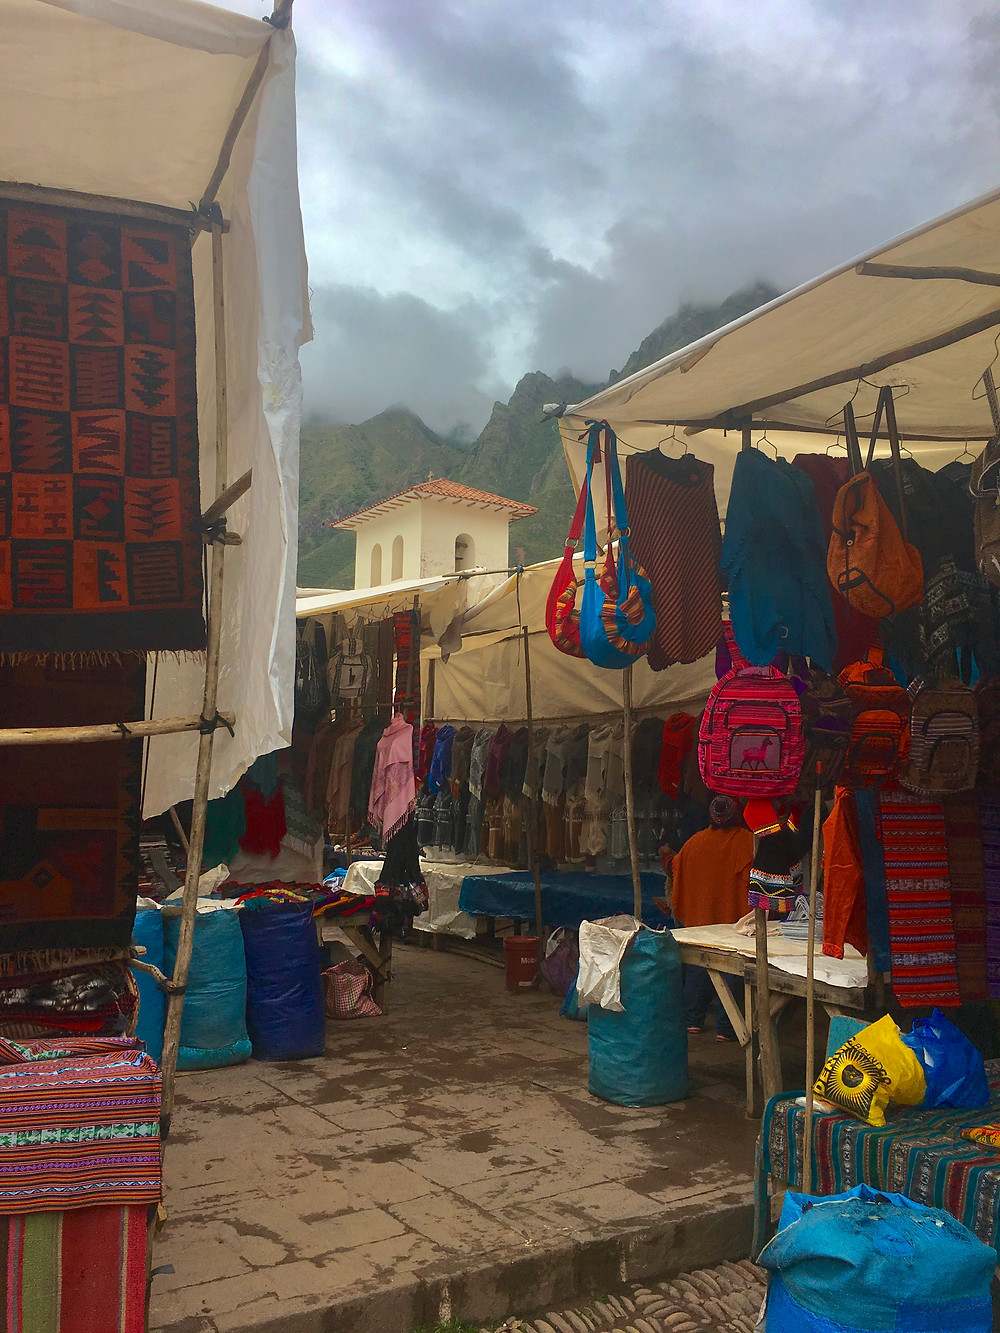 Pisac Artisinal Market has a lot of options for souvenirs and more. Don't forget to negotiate on prices!